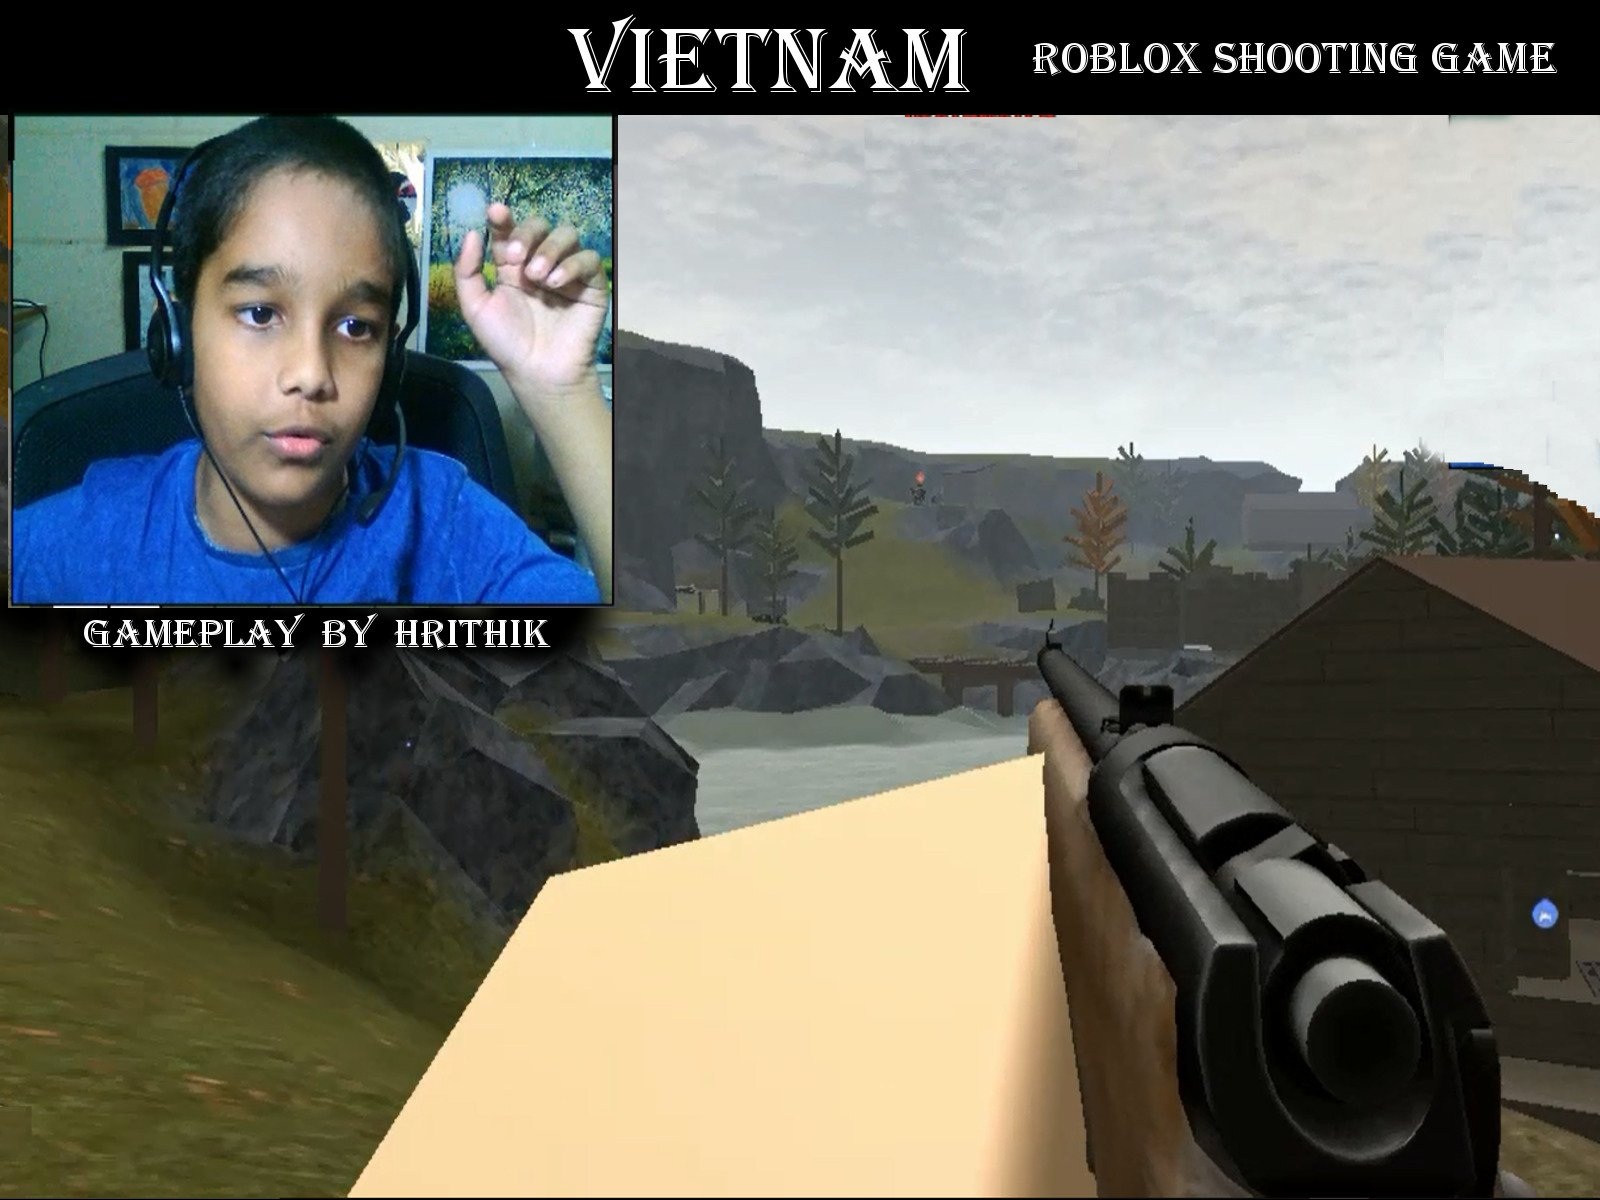 Roblox Game Where You Take Care Of A Unplayable Dog Watch Clip Roblox Shooting Games Gameplay Hrithik Prime Video